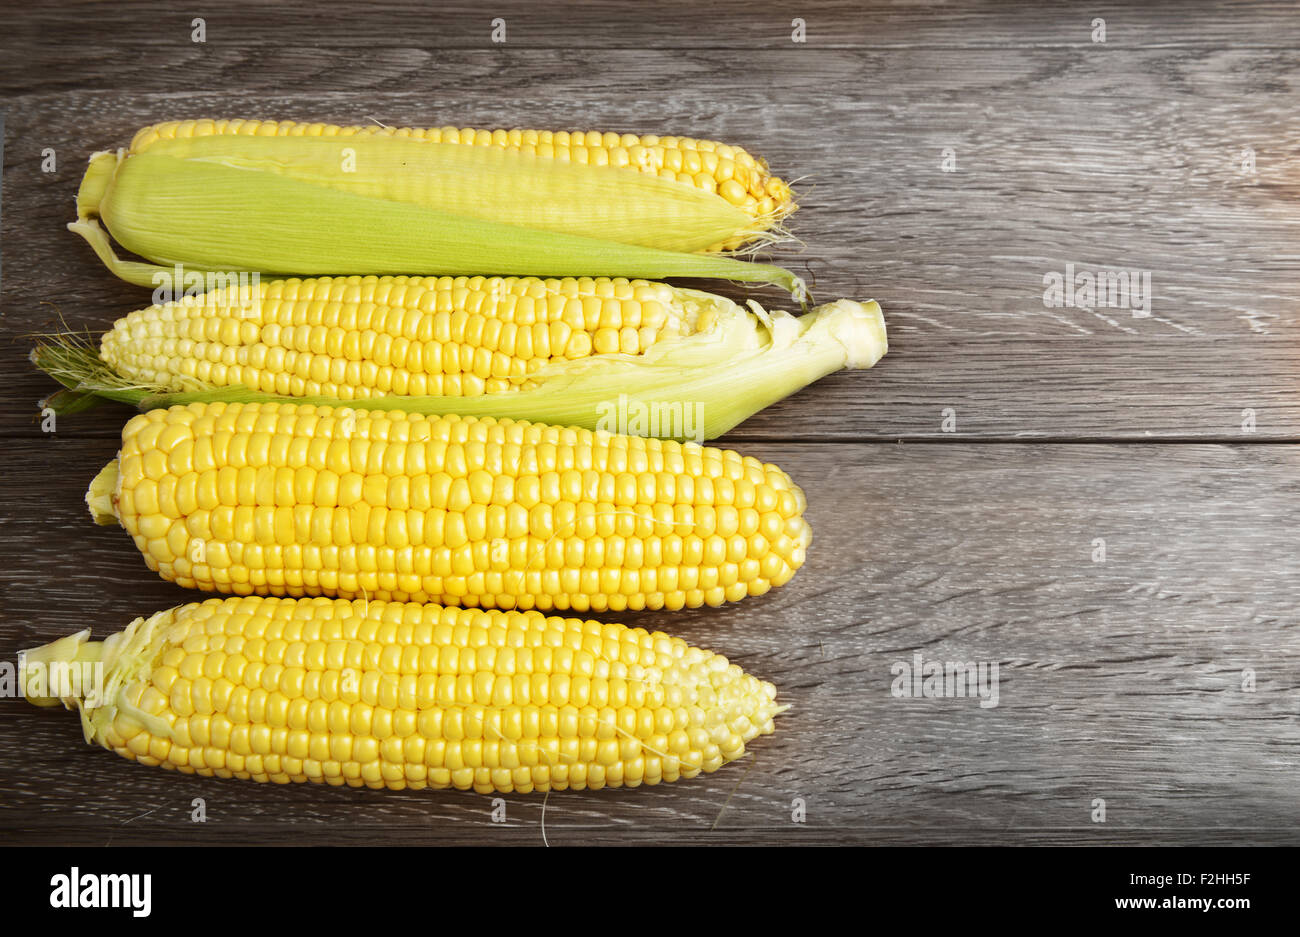 Corn cobs on wooden table - Stock Image